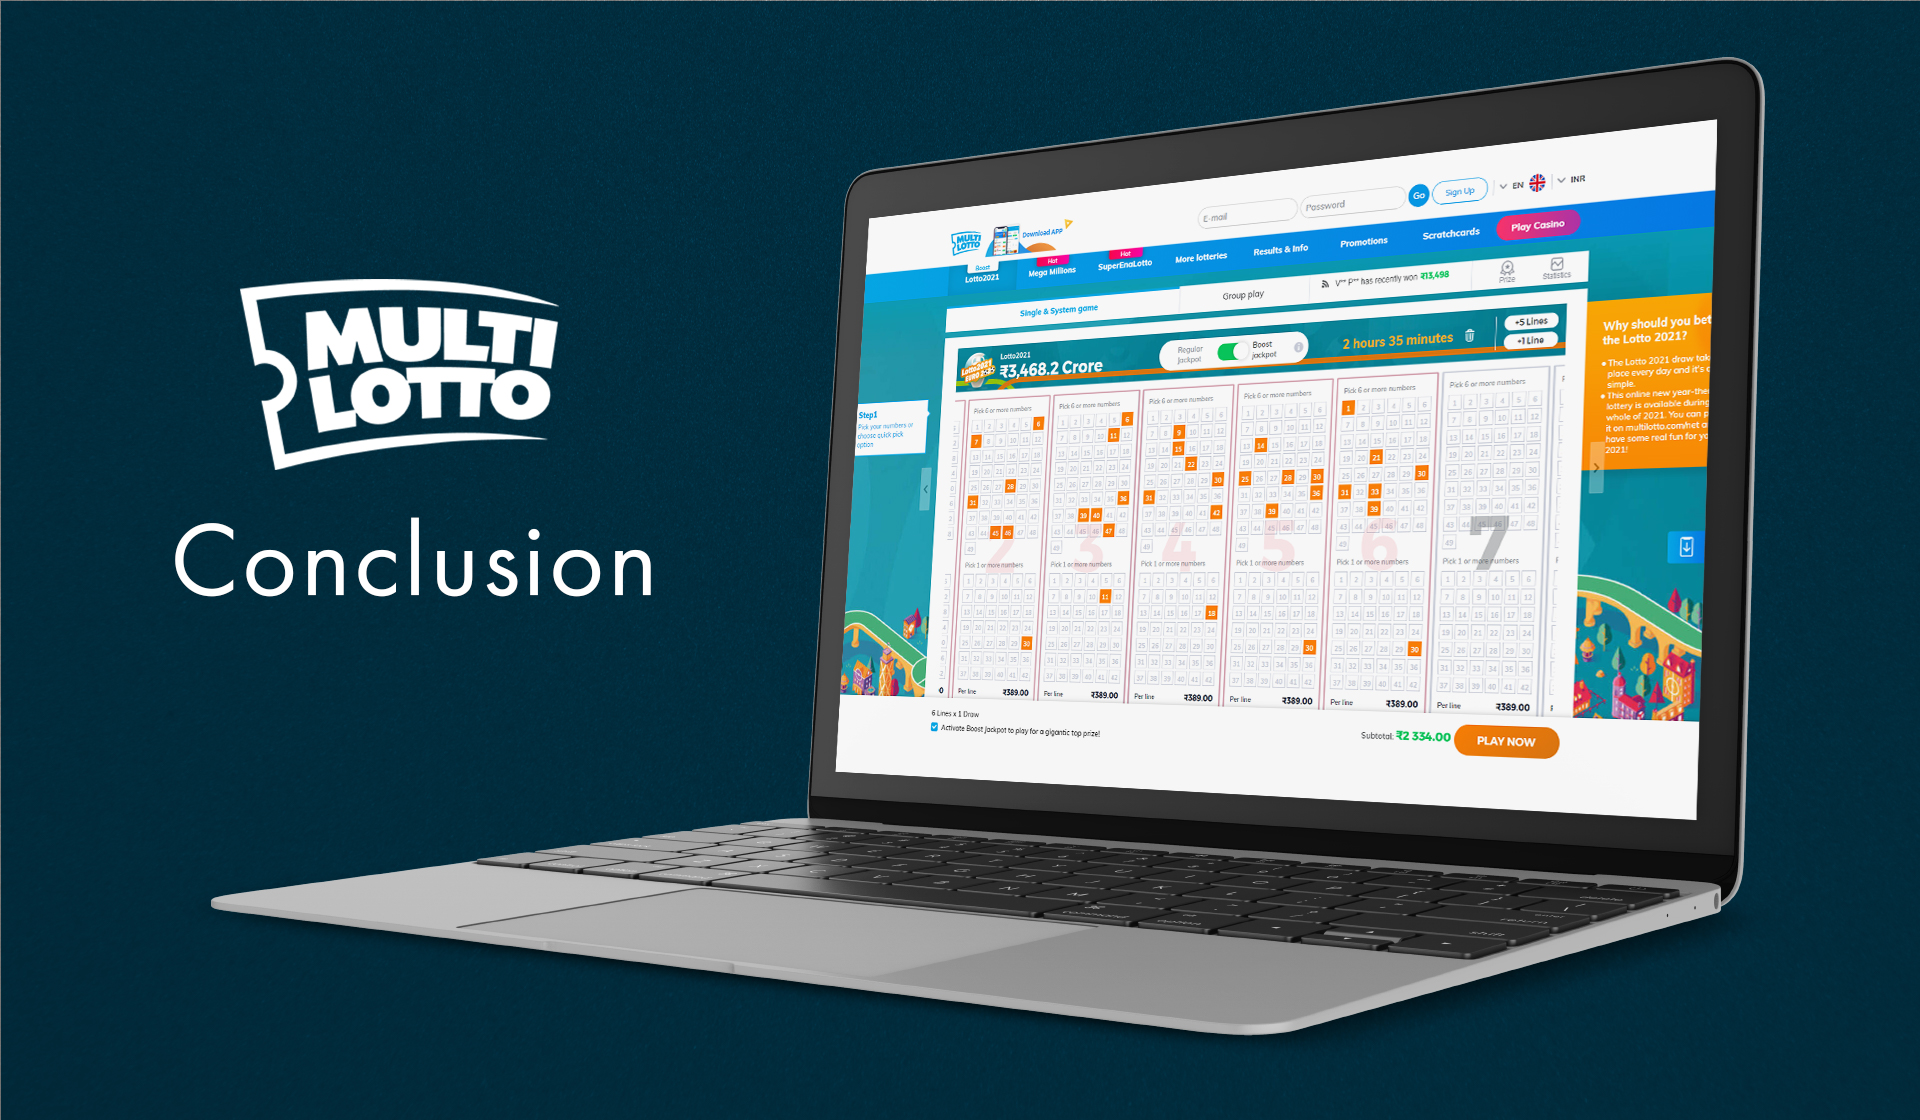 MultiLotto is a trustworthy and legit site that sells tickets to lots of international lotteries from all over the world.